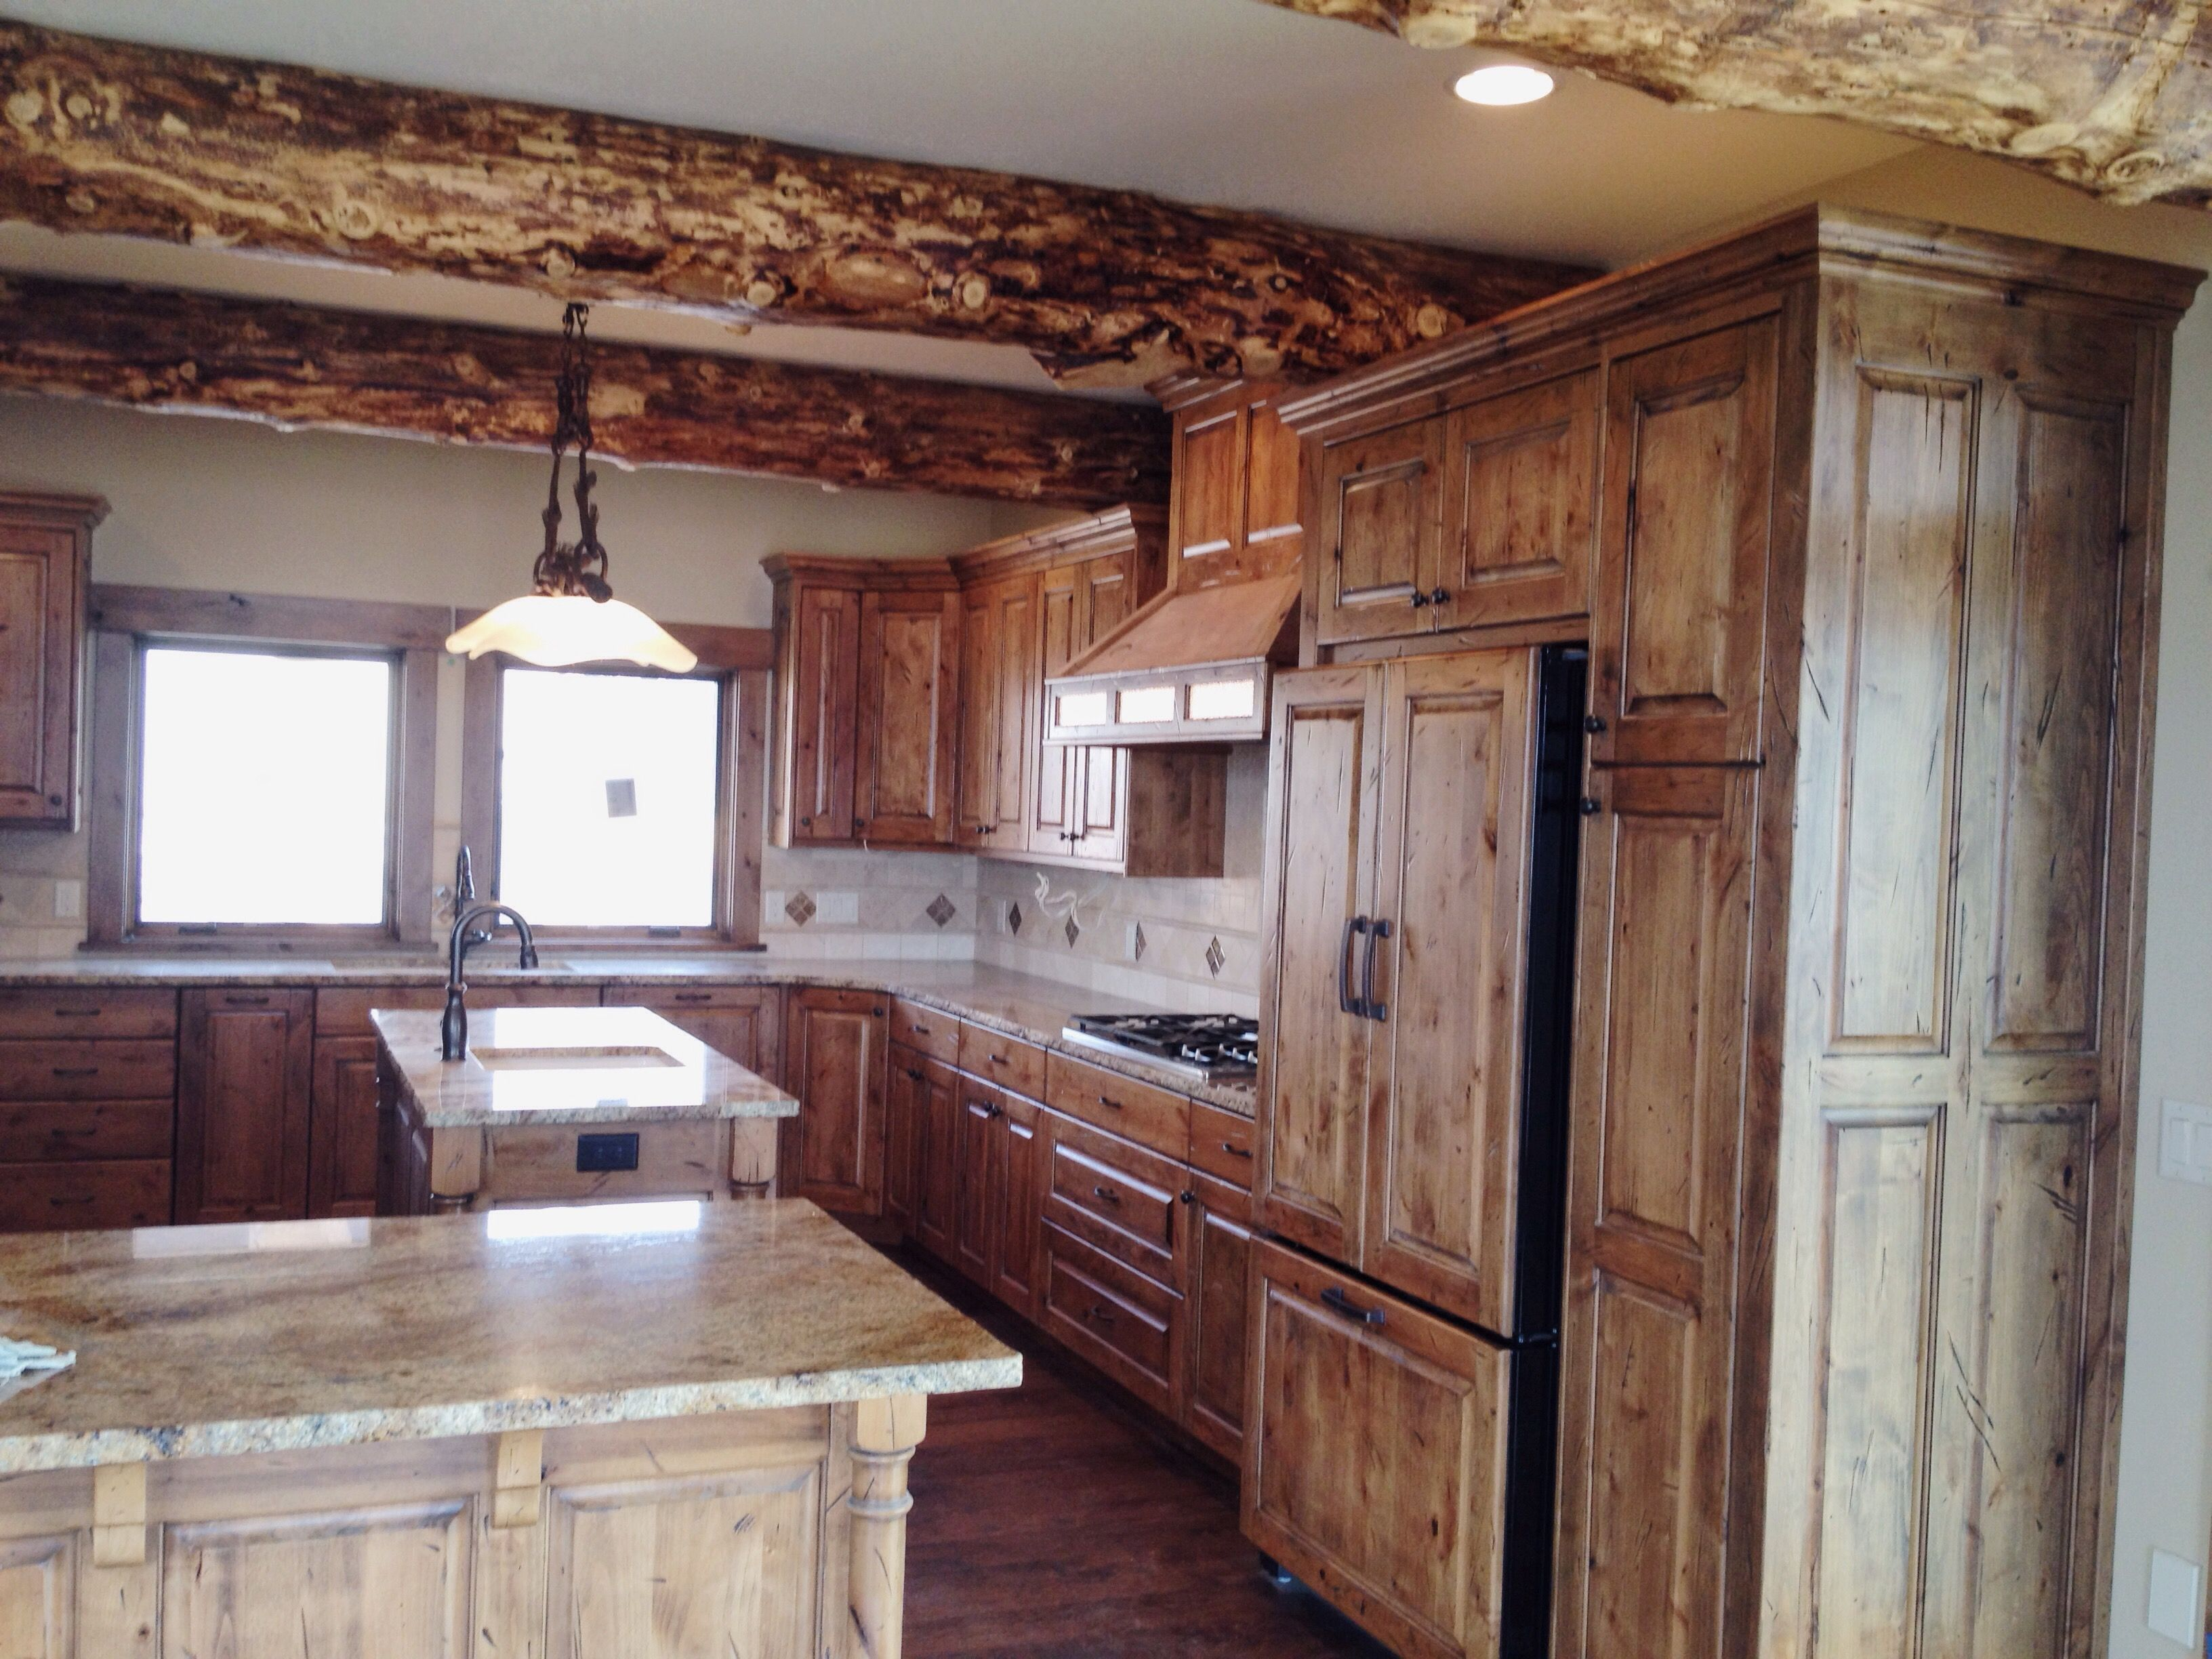 Rustic Kitchen Cabinets Done By Premier Cabinets Of Northern Utah